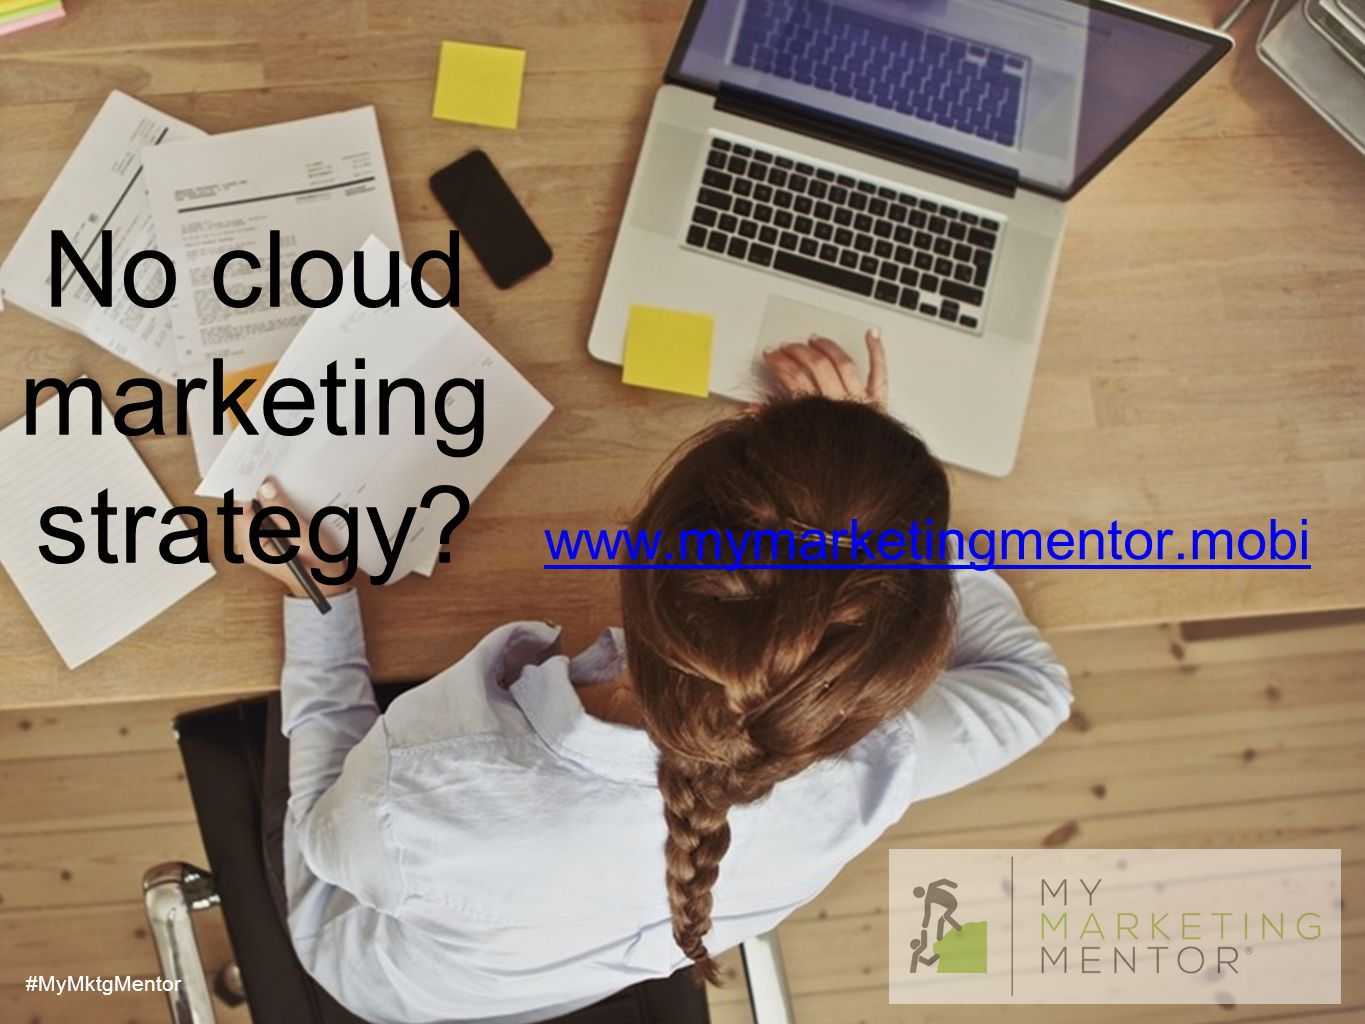 No cloud marketing strategy #MyMktgMentor www.mymarketingmentor.mobi